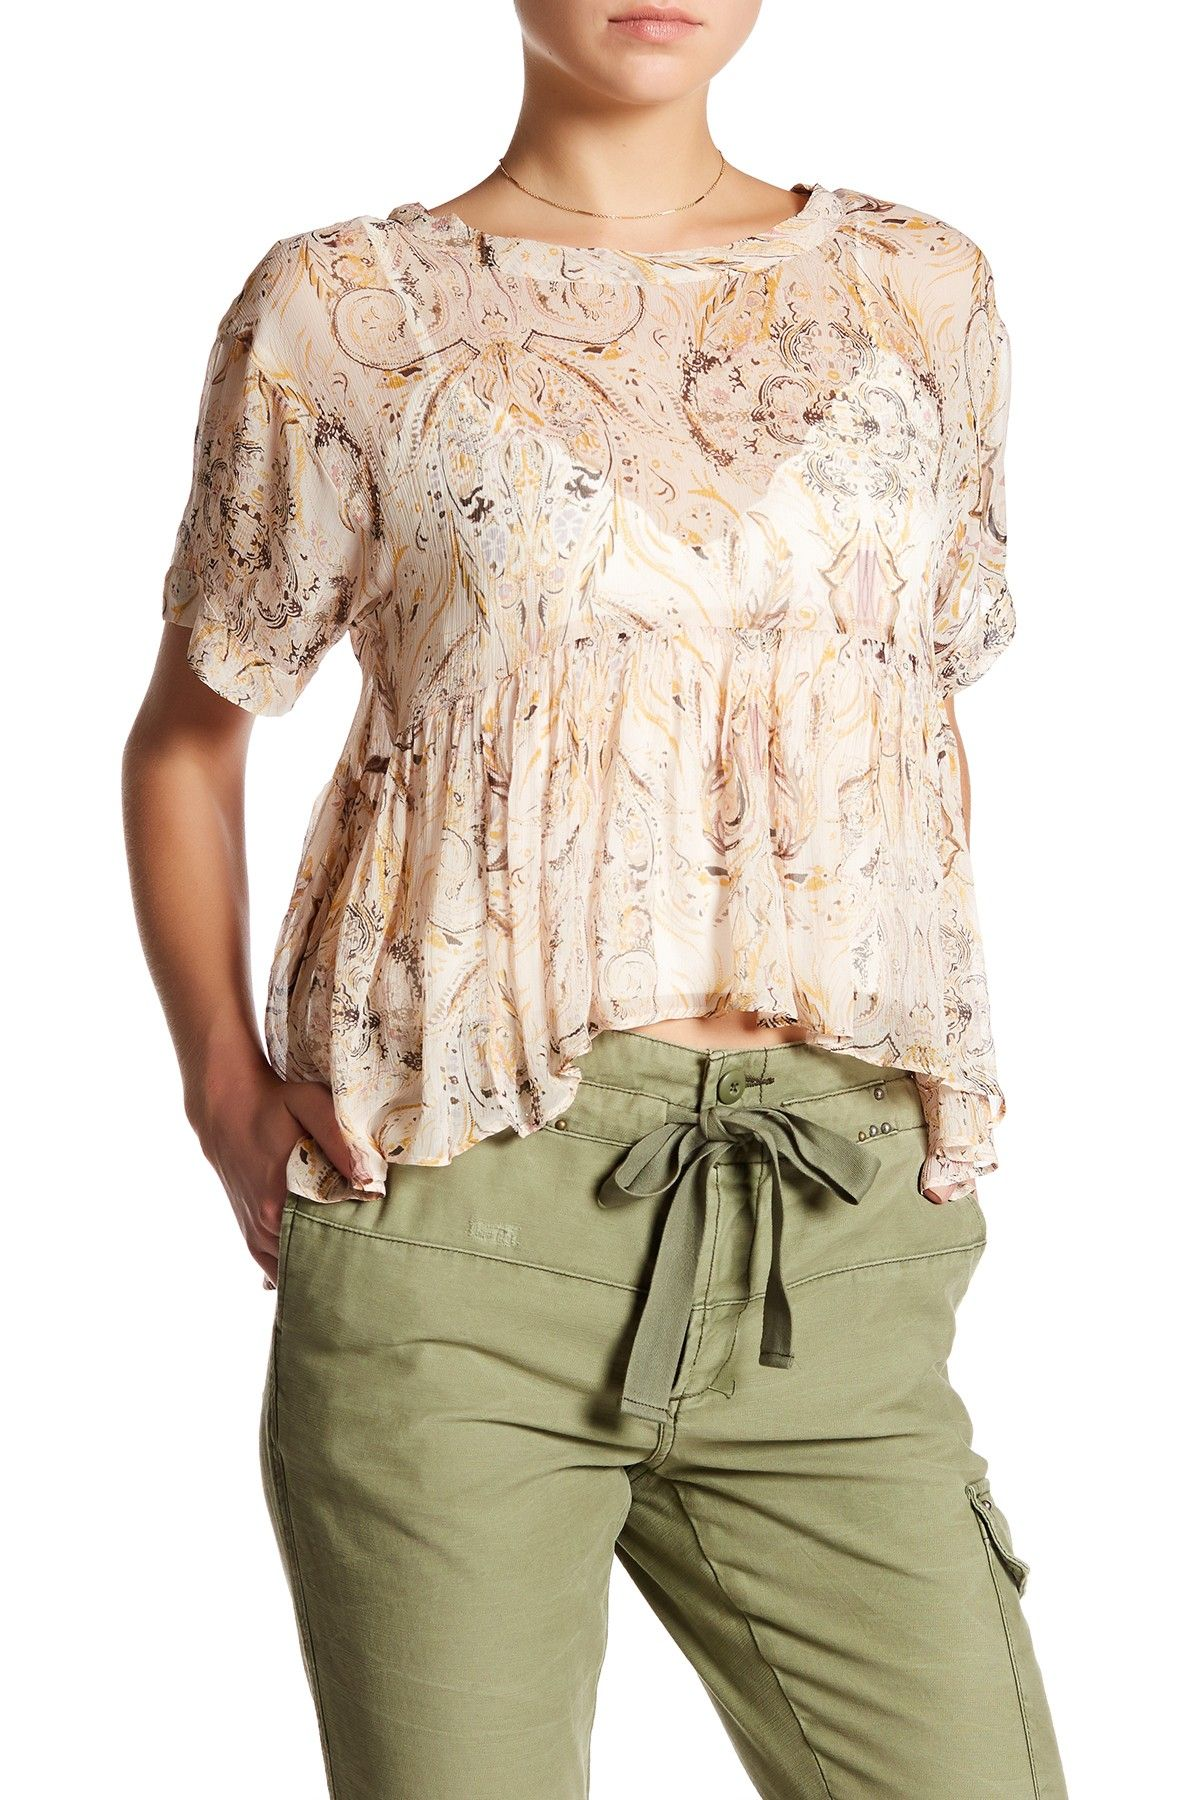 Say You Will Paisley Shirt by Free People on @nordstrom_rack